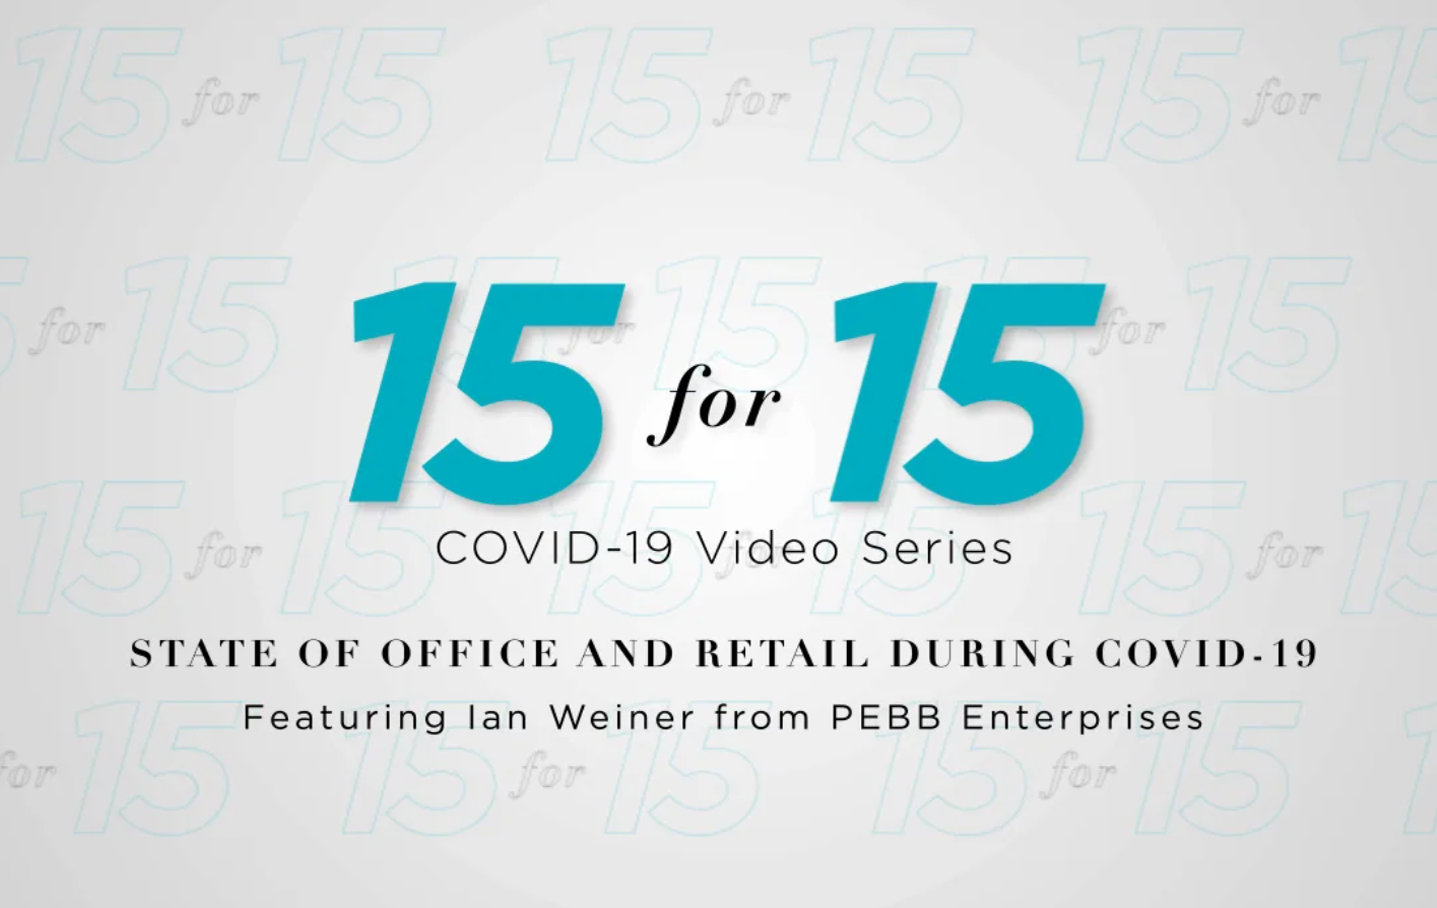 President & Chief Executive Officer Ian Weiner featured on 15 for 15